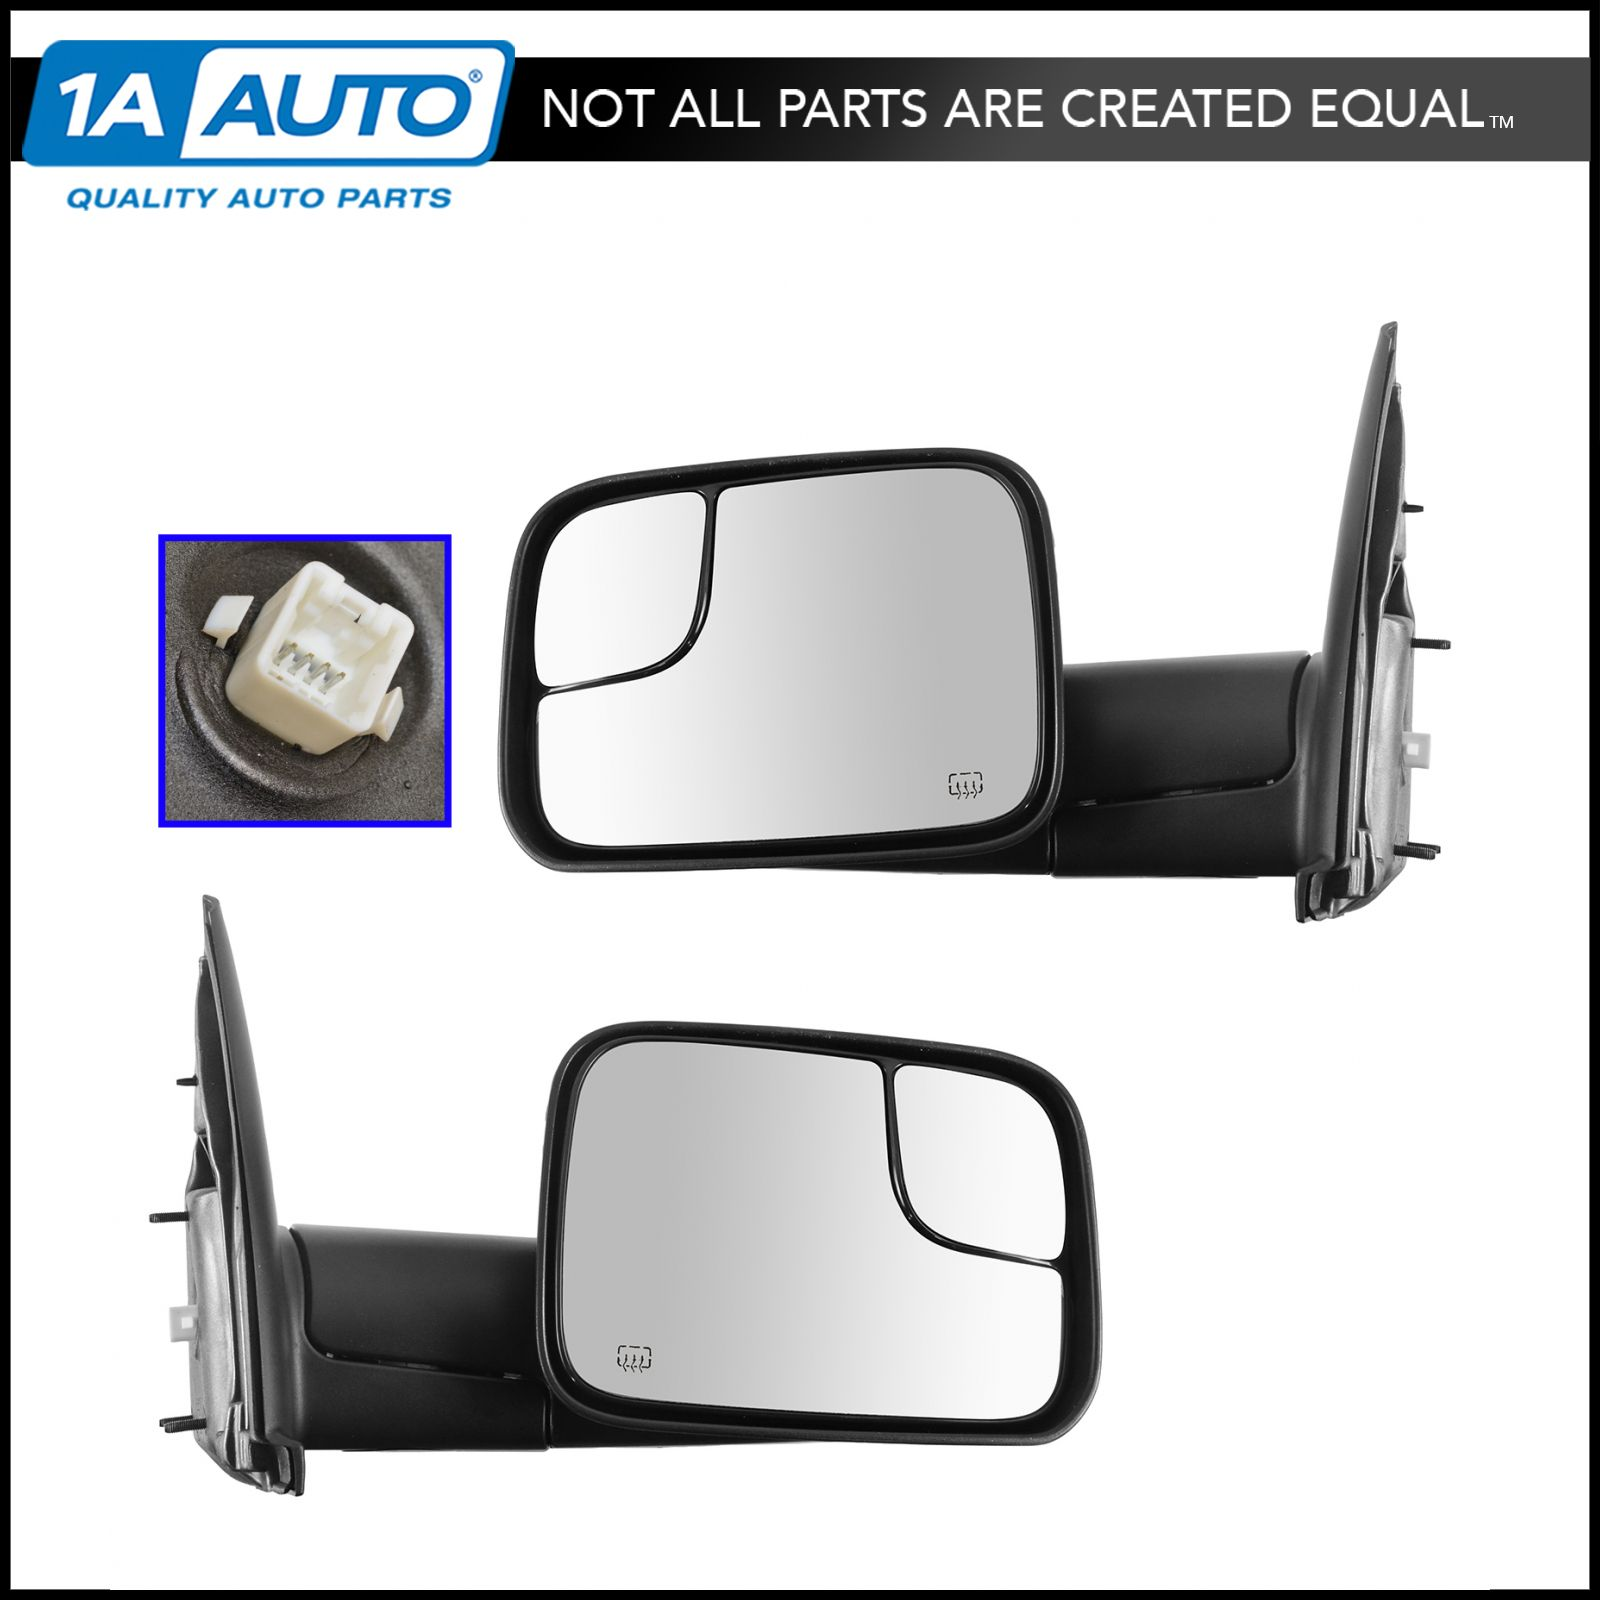 Oem 82207298 Power Heater Flip Up Style Tow Mirrors Pair For Dodge Ram 2500 Towing Pickup